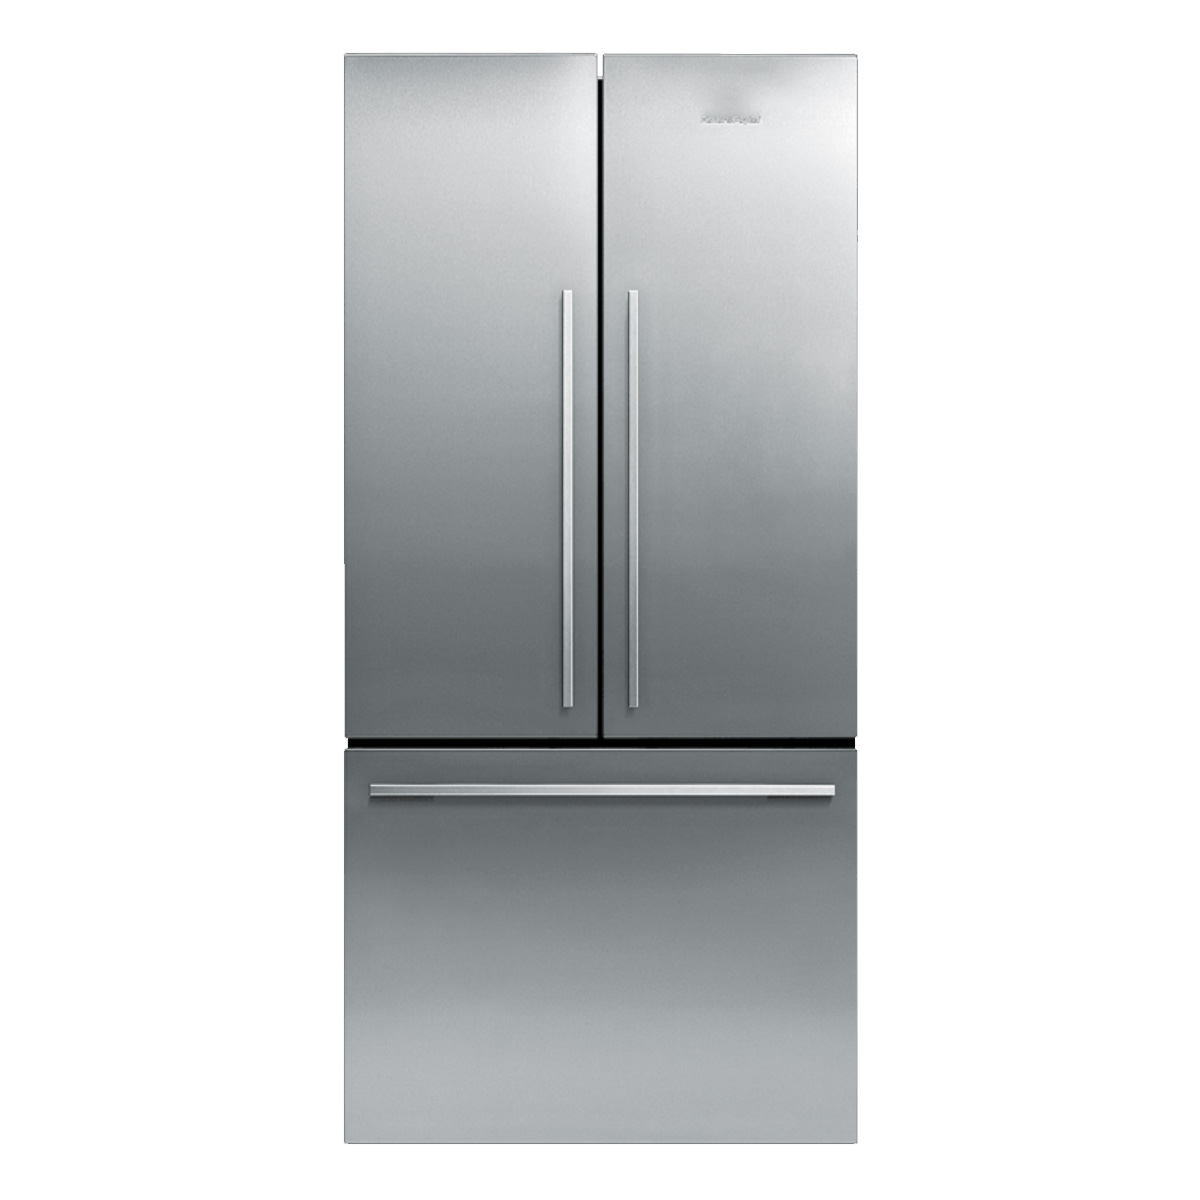 Fisher & Paykel RF522ADX5 519L French Door Fridge